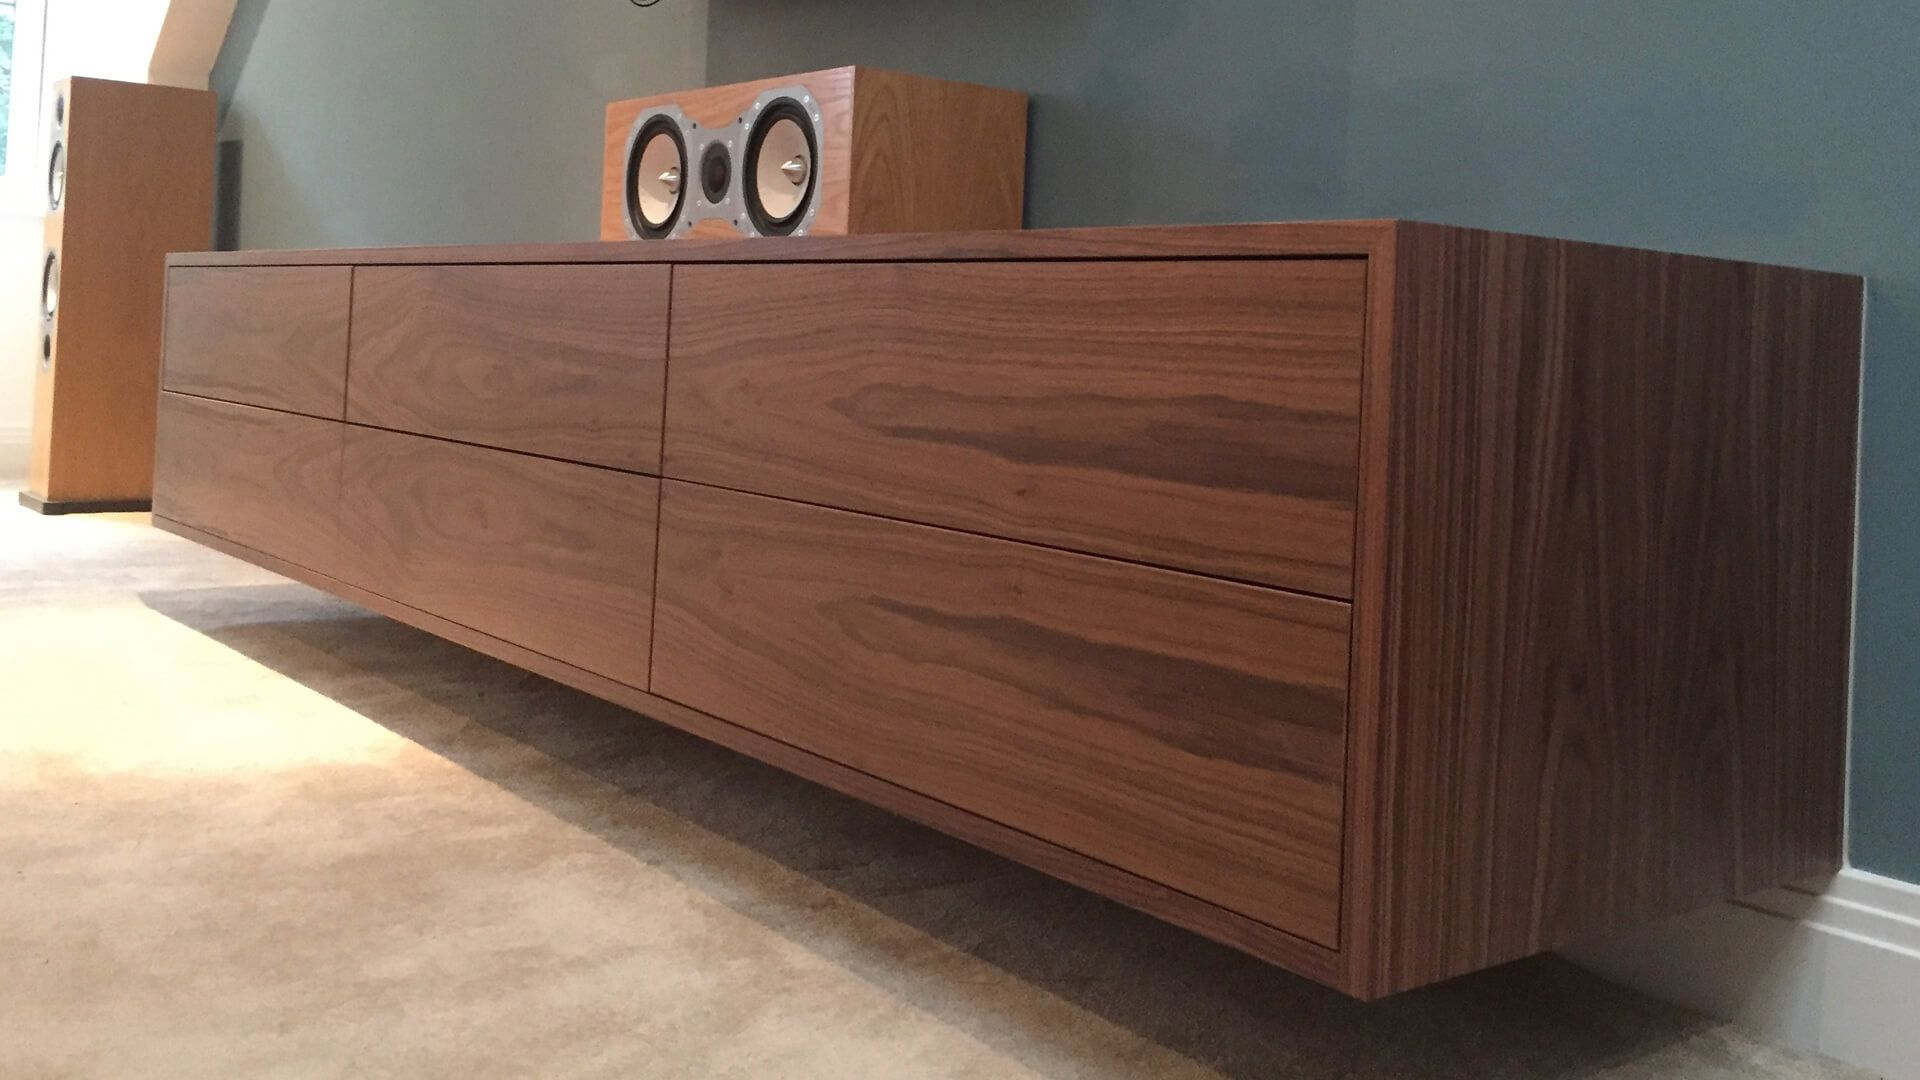 This Walnut Wall Mounted Av Cabinet Was Handmade In Britain By Born Of Wood S Sister Company